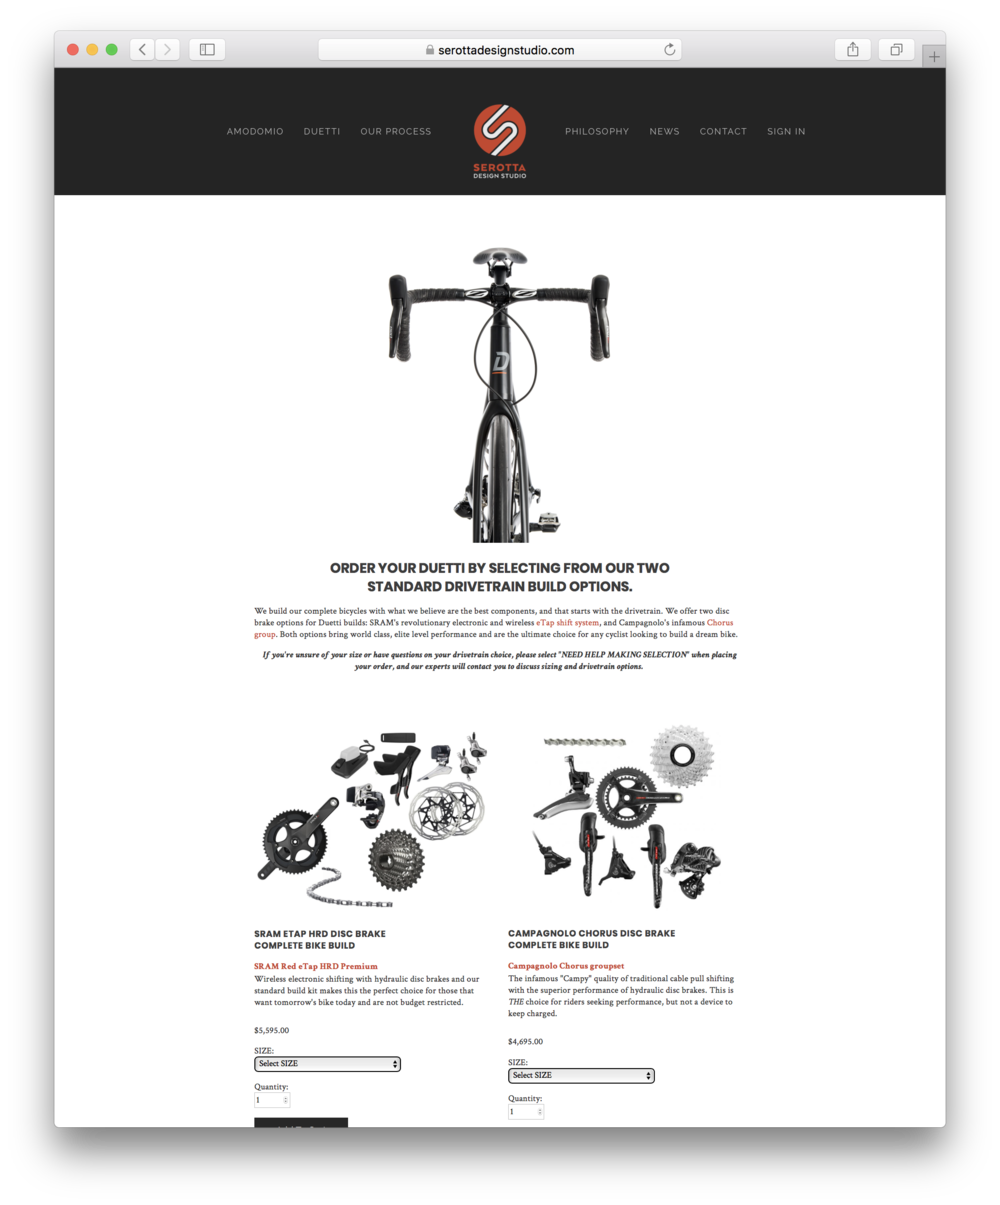 SEROTTA DESIGN STUDIO BIKE BUILD PAGE